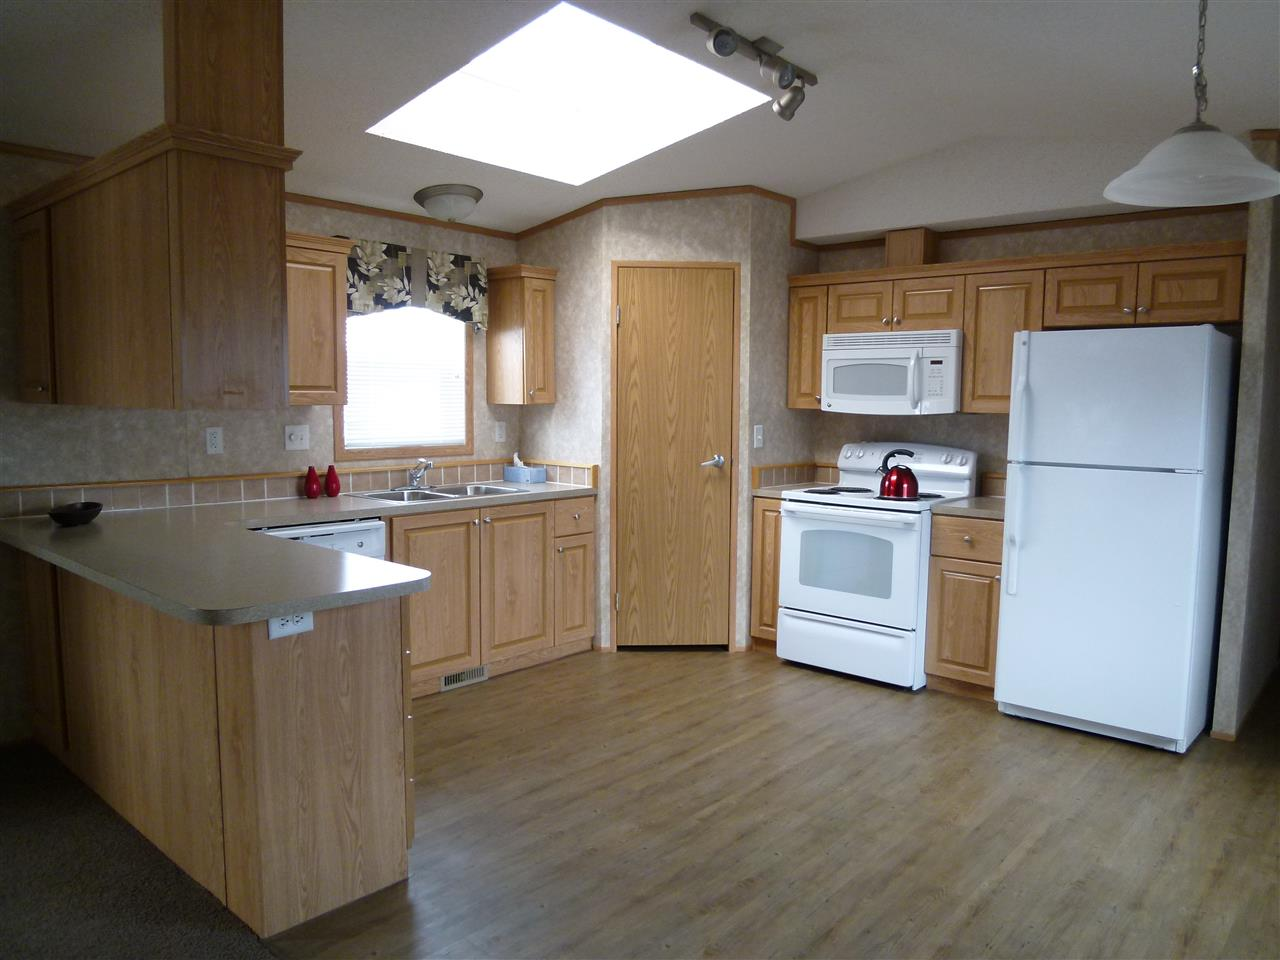 10 Min to Wabamun Lake, 30 min from Spruce Grove and 55 min West of Edmonton.  A Great Floor Plan with 3 Bedrooms and 2 baths, Vaulted Living Room Ceiling.  Large Living Room and Bright Kitchen with Skylight, Plenty of Cupboards and Convenient Pantry. Sleep well in this Spacious Master Bedroom with 4 pce Ensuite and Walk in Closet.  This home is in Mint Condition. Steps and Skirting installed in 2018. Located on a Quiet Street close to the Park Reserve and 1 block from the Arena.  A very Affordable and Spacious Home in a Resort Like Community with Lakes, River, Golfing, Fishing, Tubing, and Walking Trails all here to enjoy! The lot is leased at $470 per month which includes Water, Sewer, Garbage and Mobile Taxes to the County.  Will consider a truck in trade for down payment.